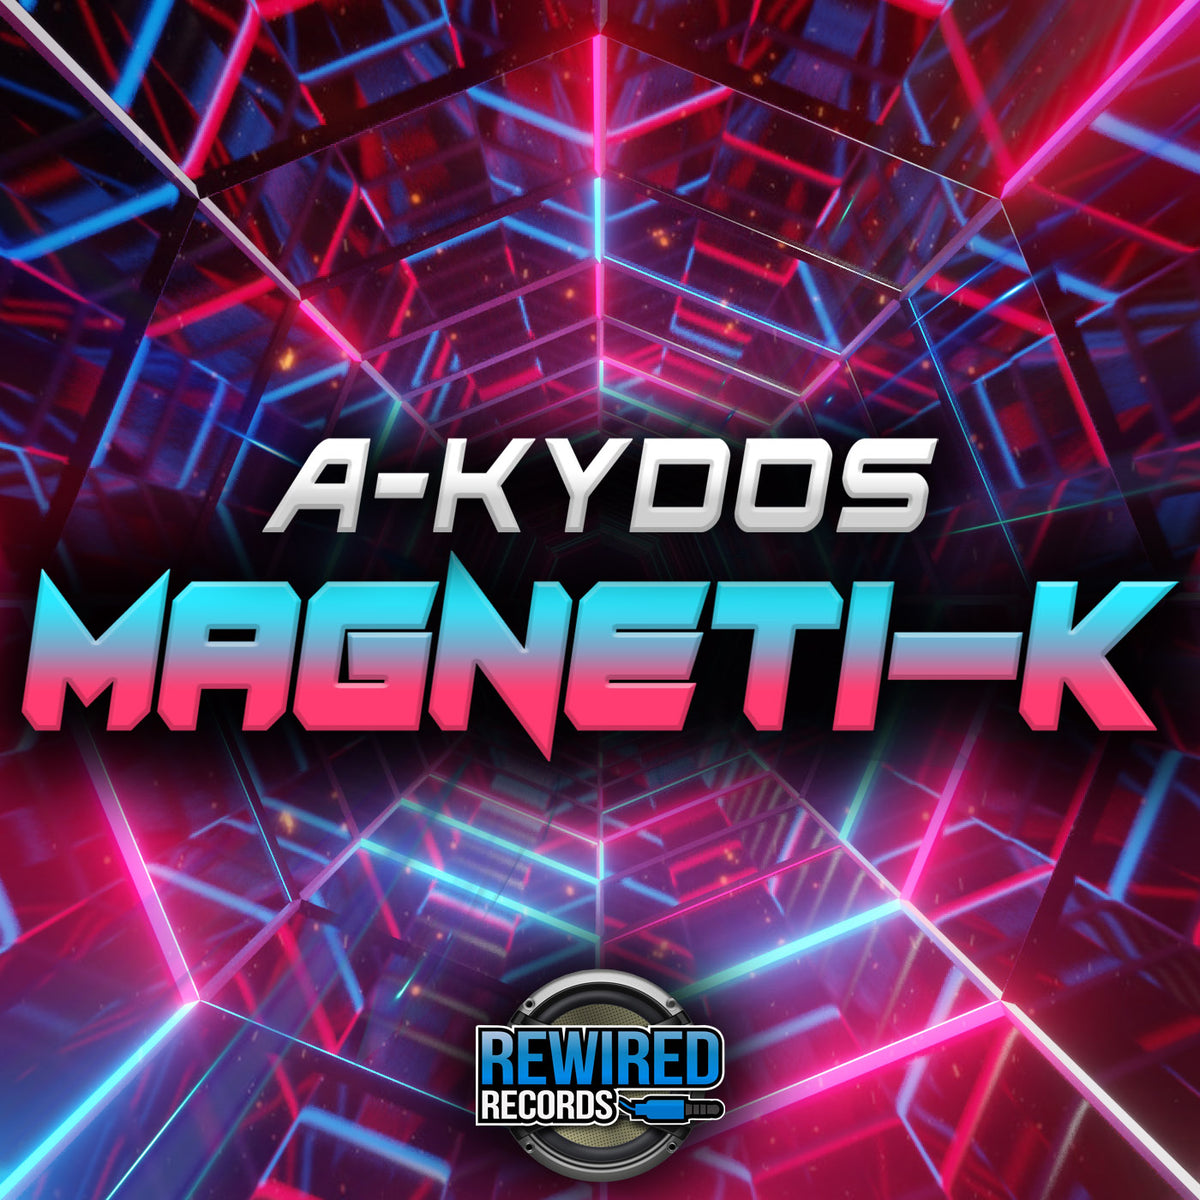 A Kydos Magneti K Rewired Records